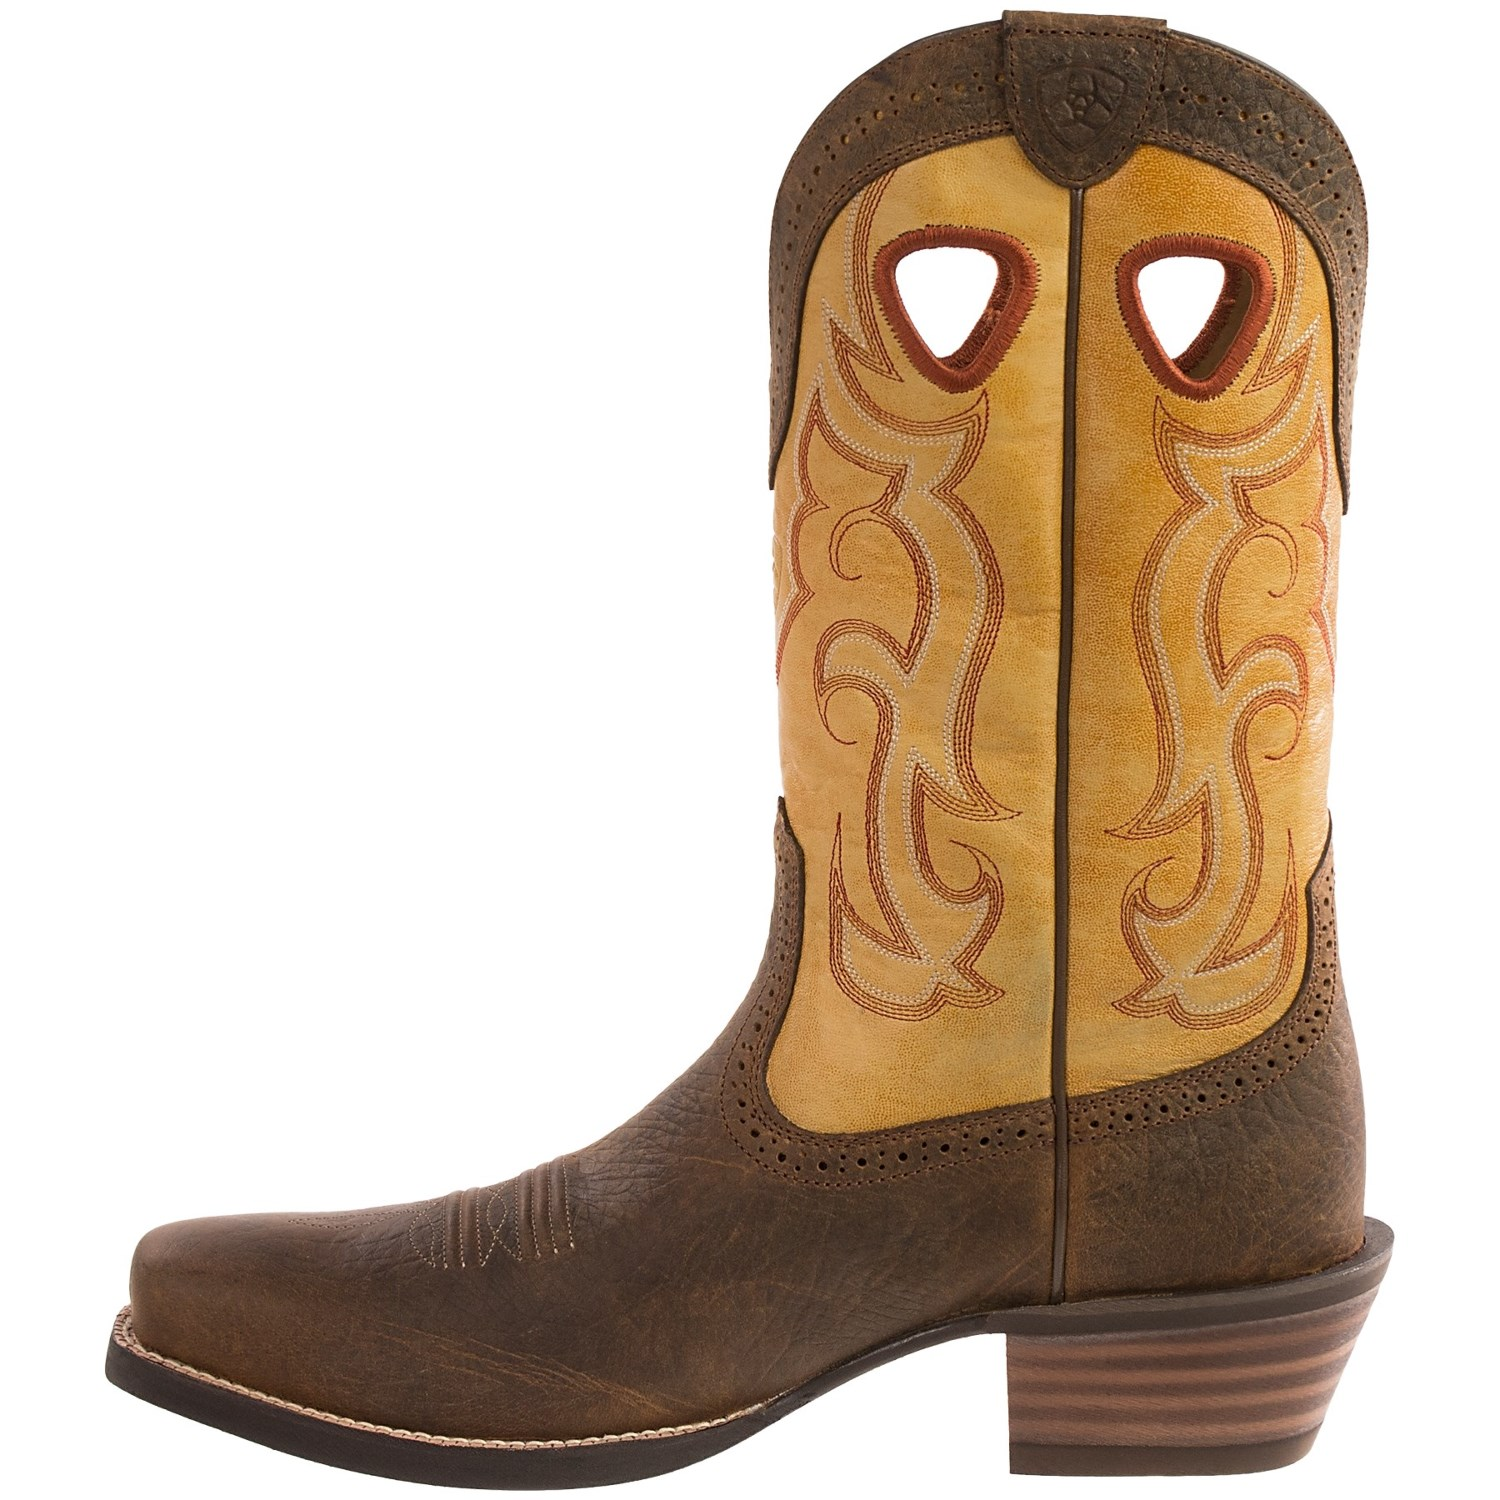 Ariat Boots Clearance - Boot Hto